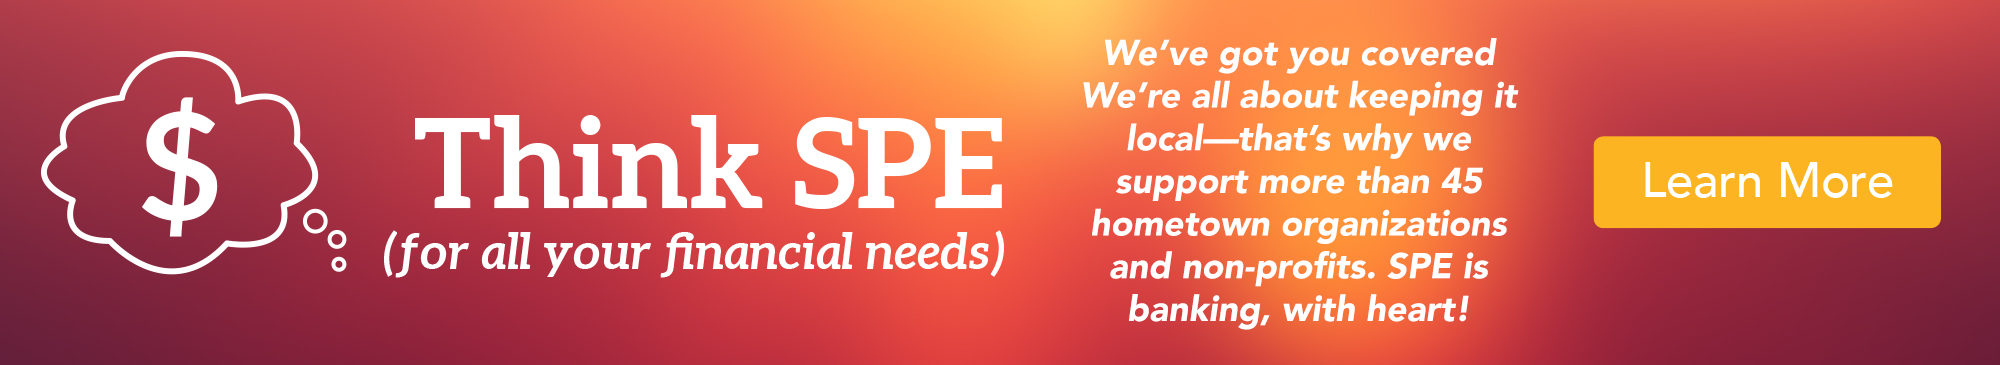 Gradient background image, Think SPE for financial needs, support local